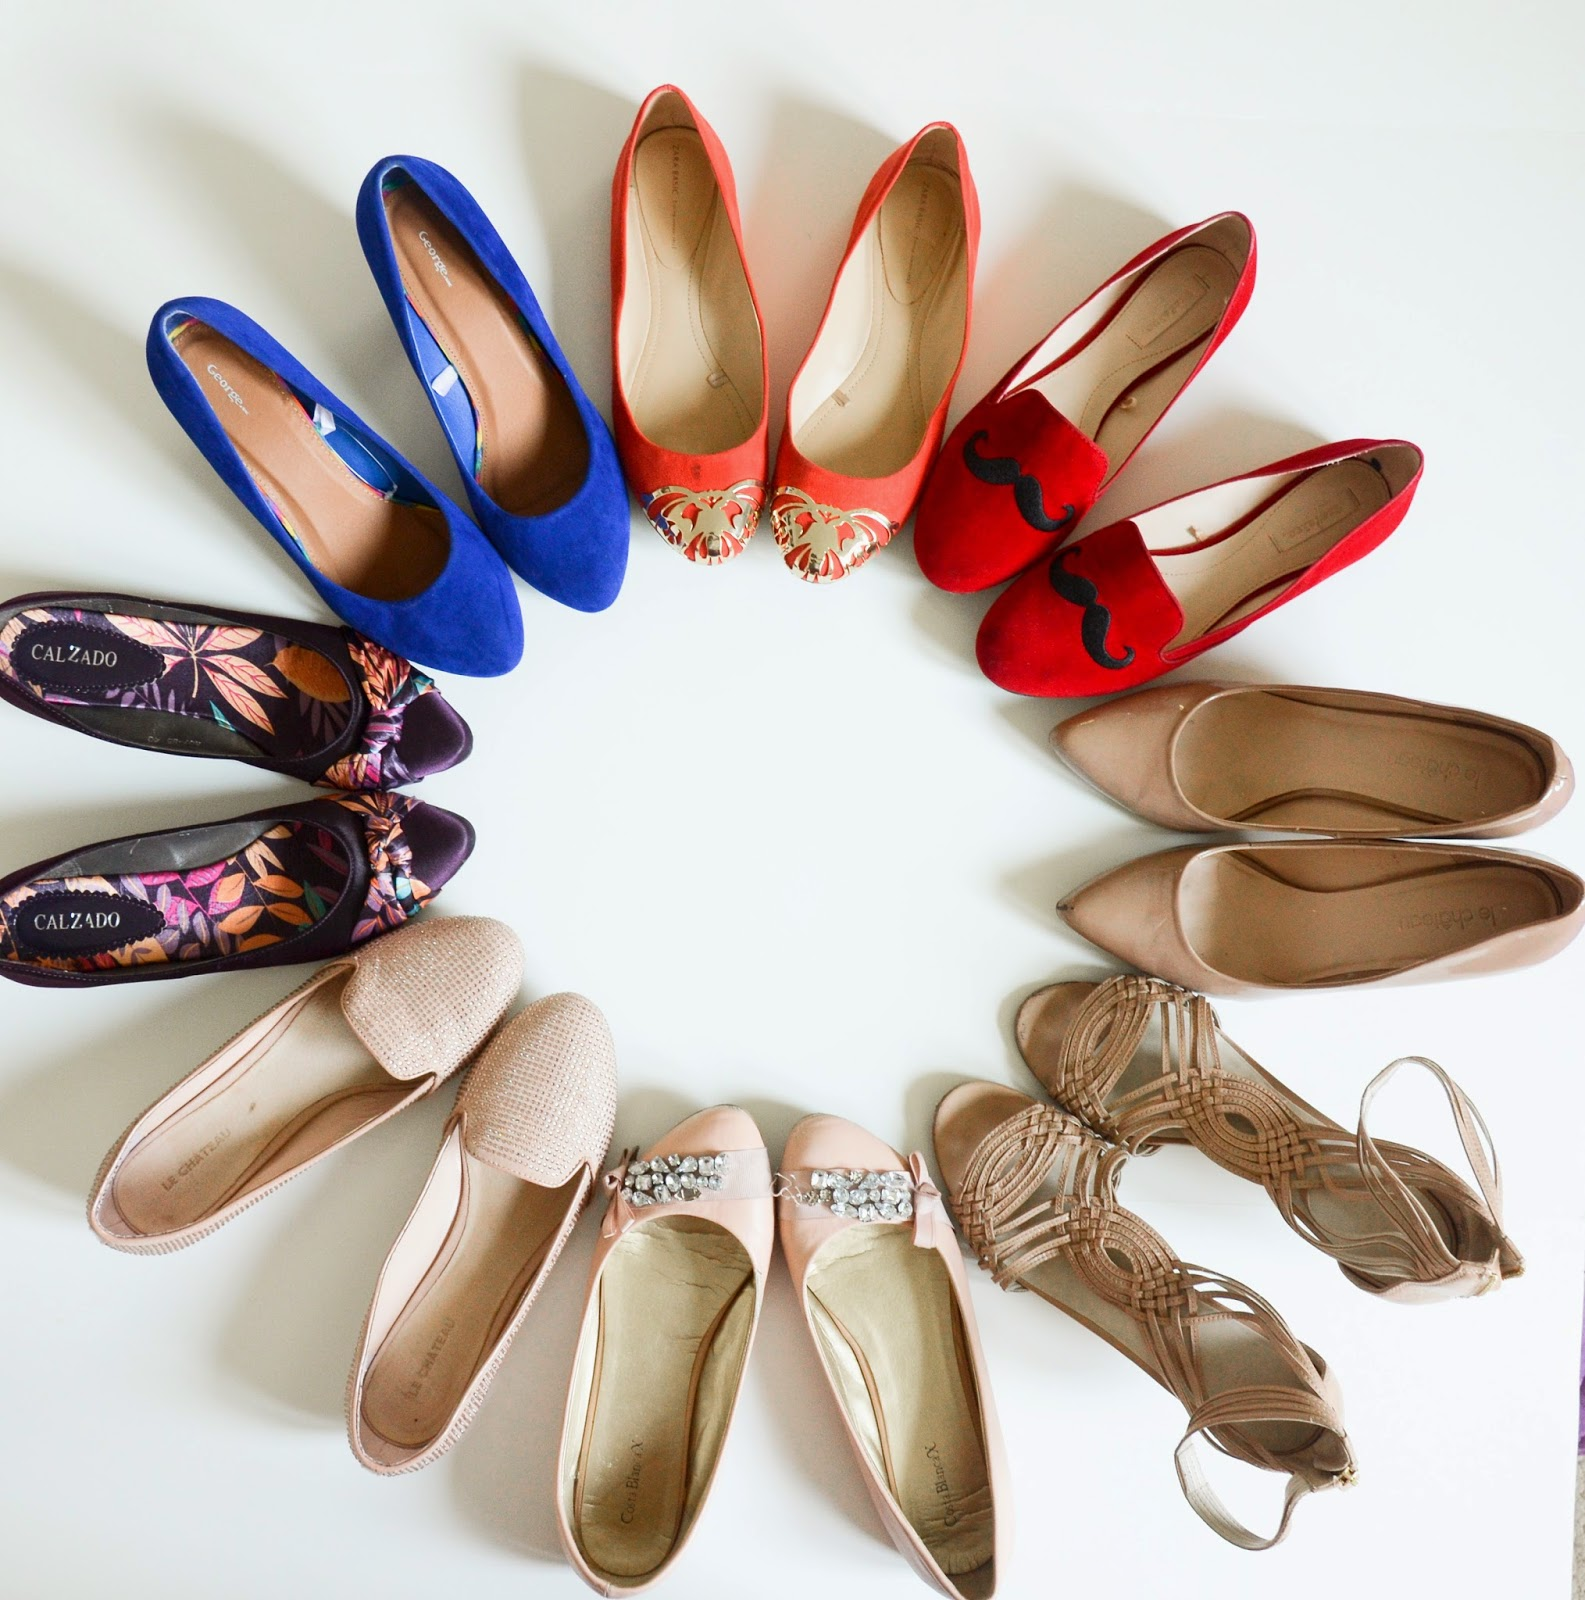 Shoes galore waiting for spring - ninewest, townshoes, le chaeau, zara